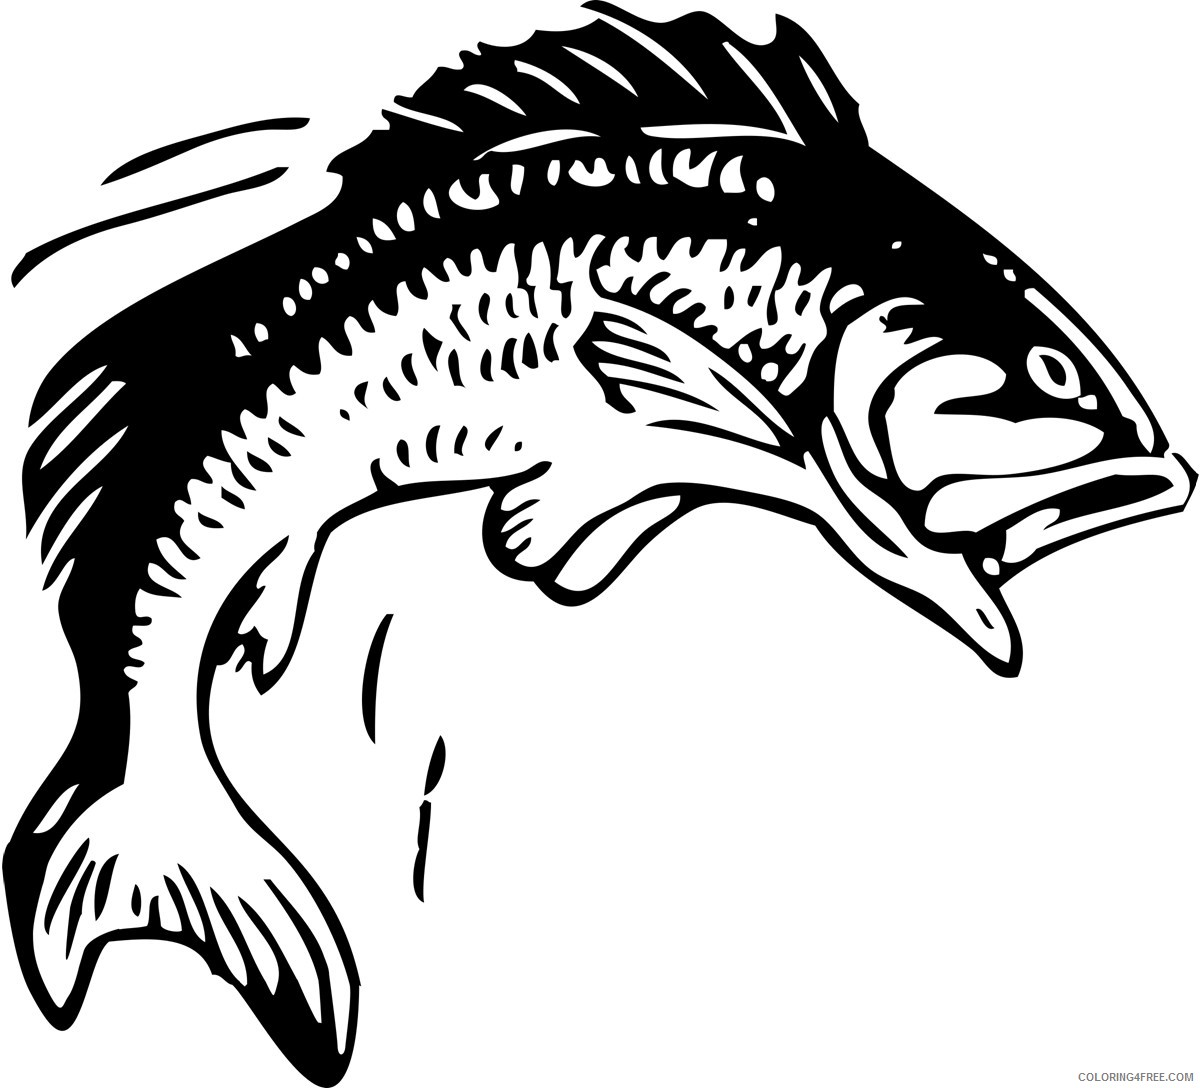 Black and White Fish Coloring Pages fishing on clip art Printable Coloring4free